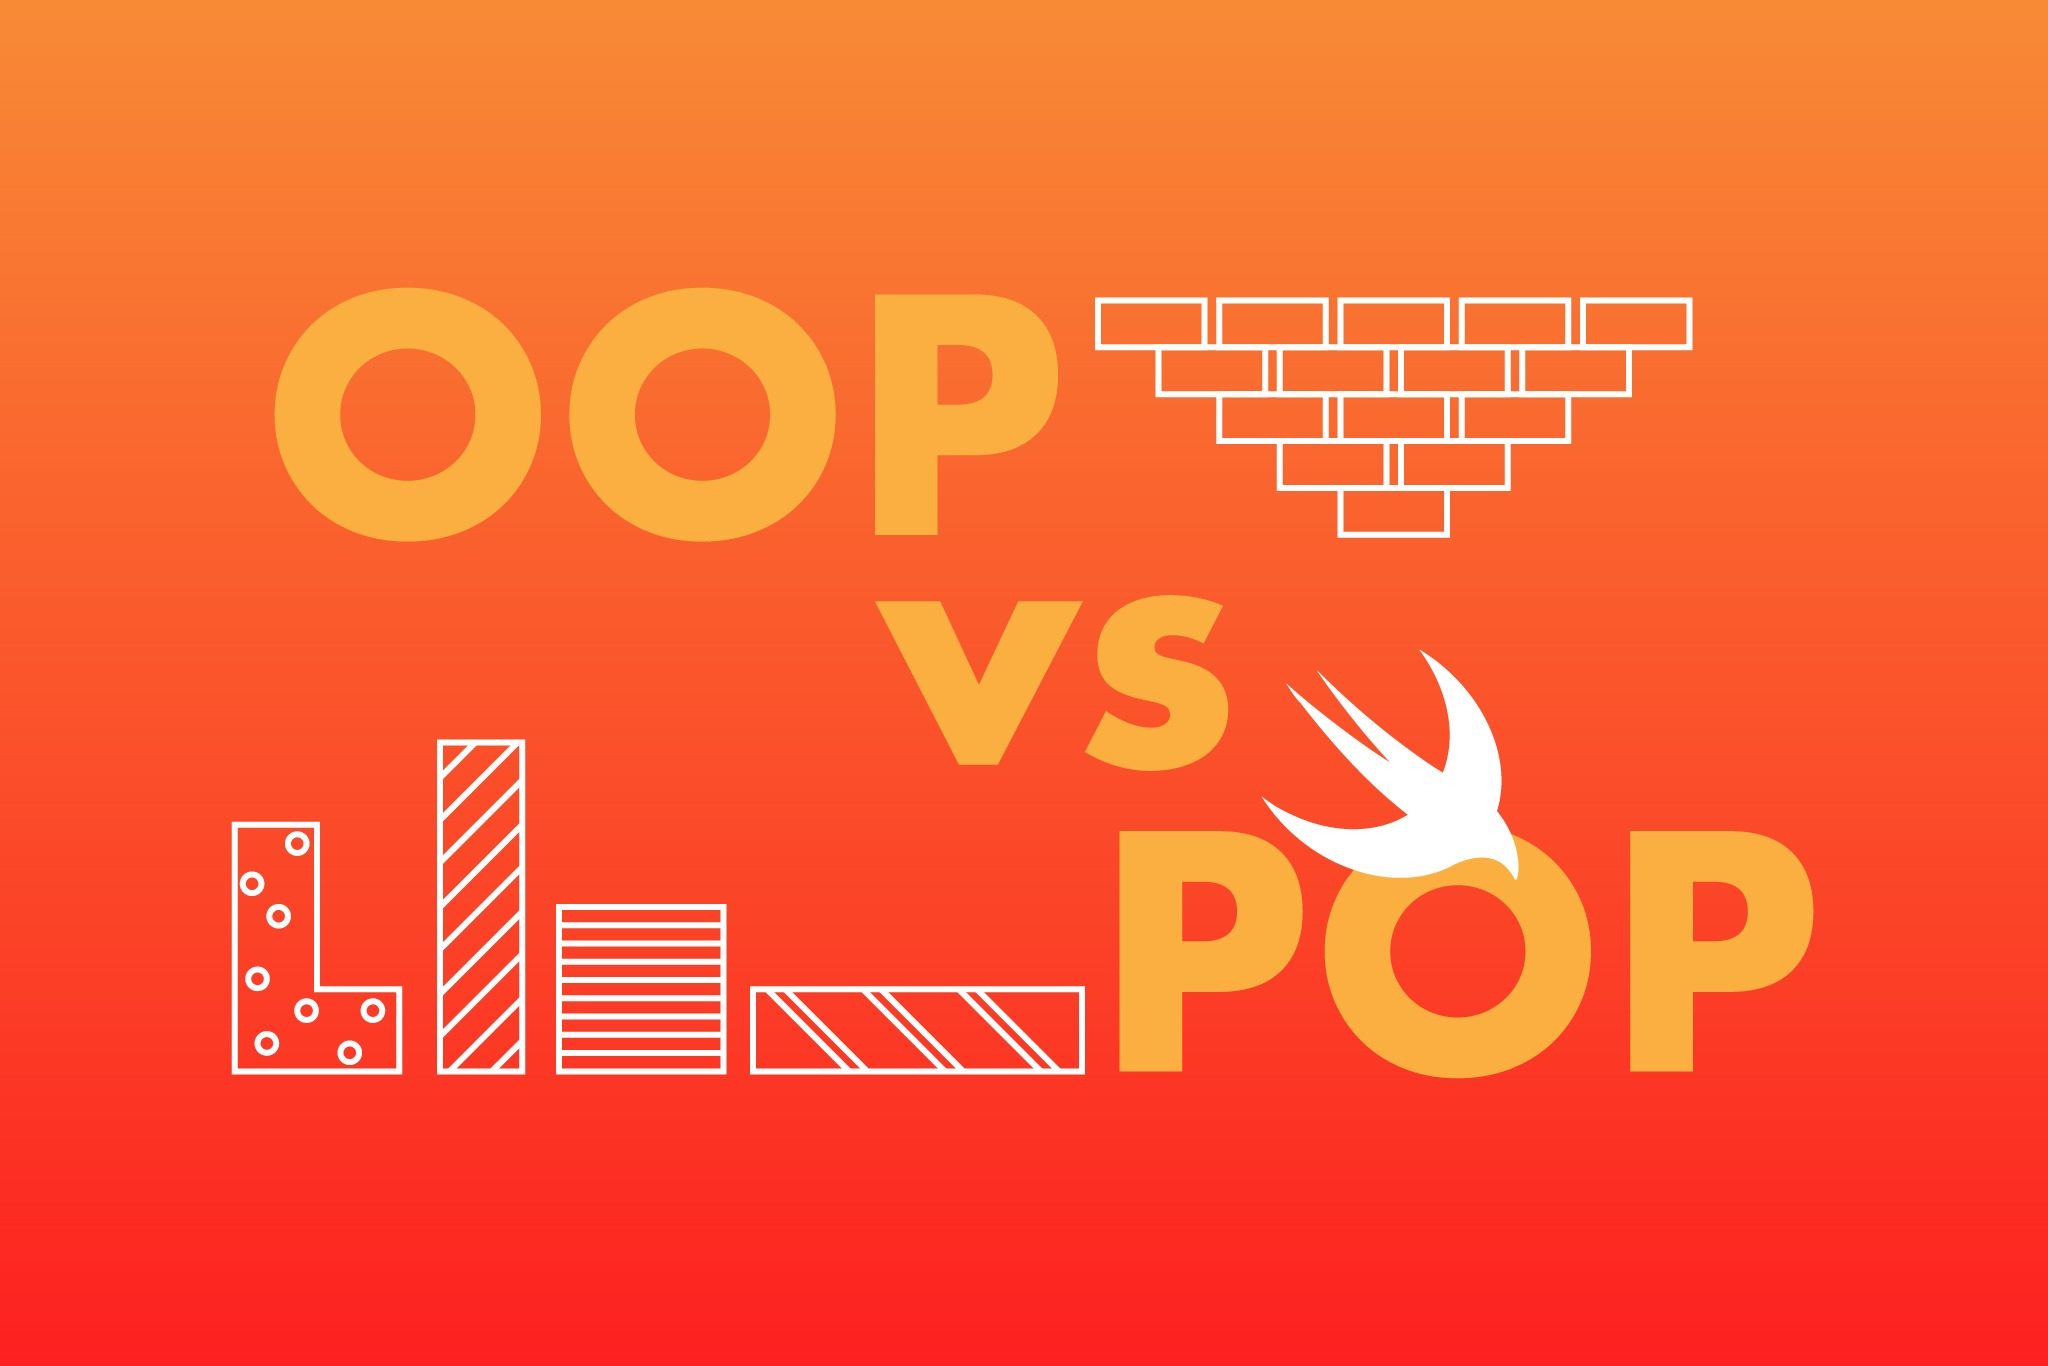 Protocol-oriented programming vs object-oriented in Swift: translating complicated world into simple code